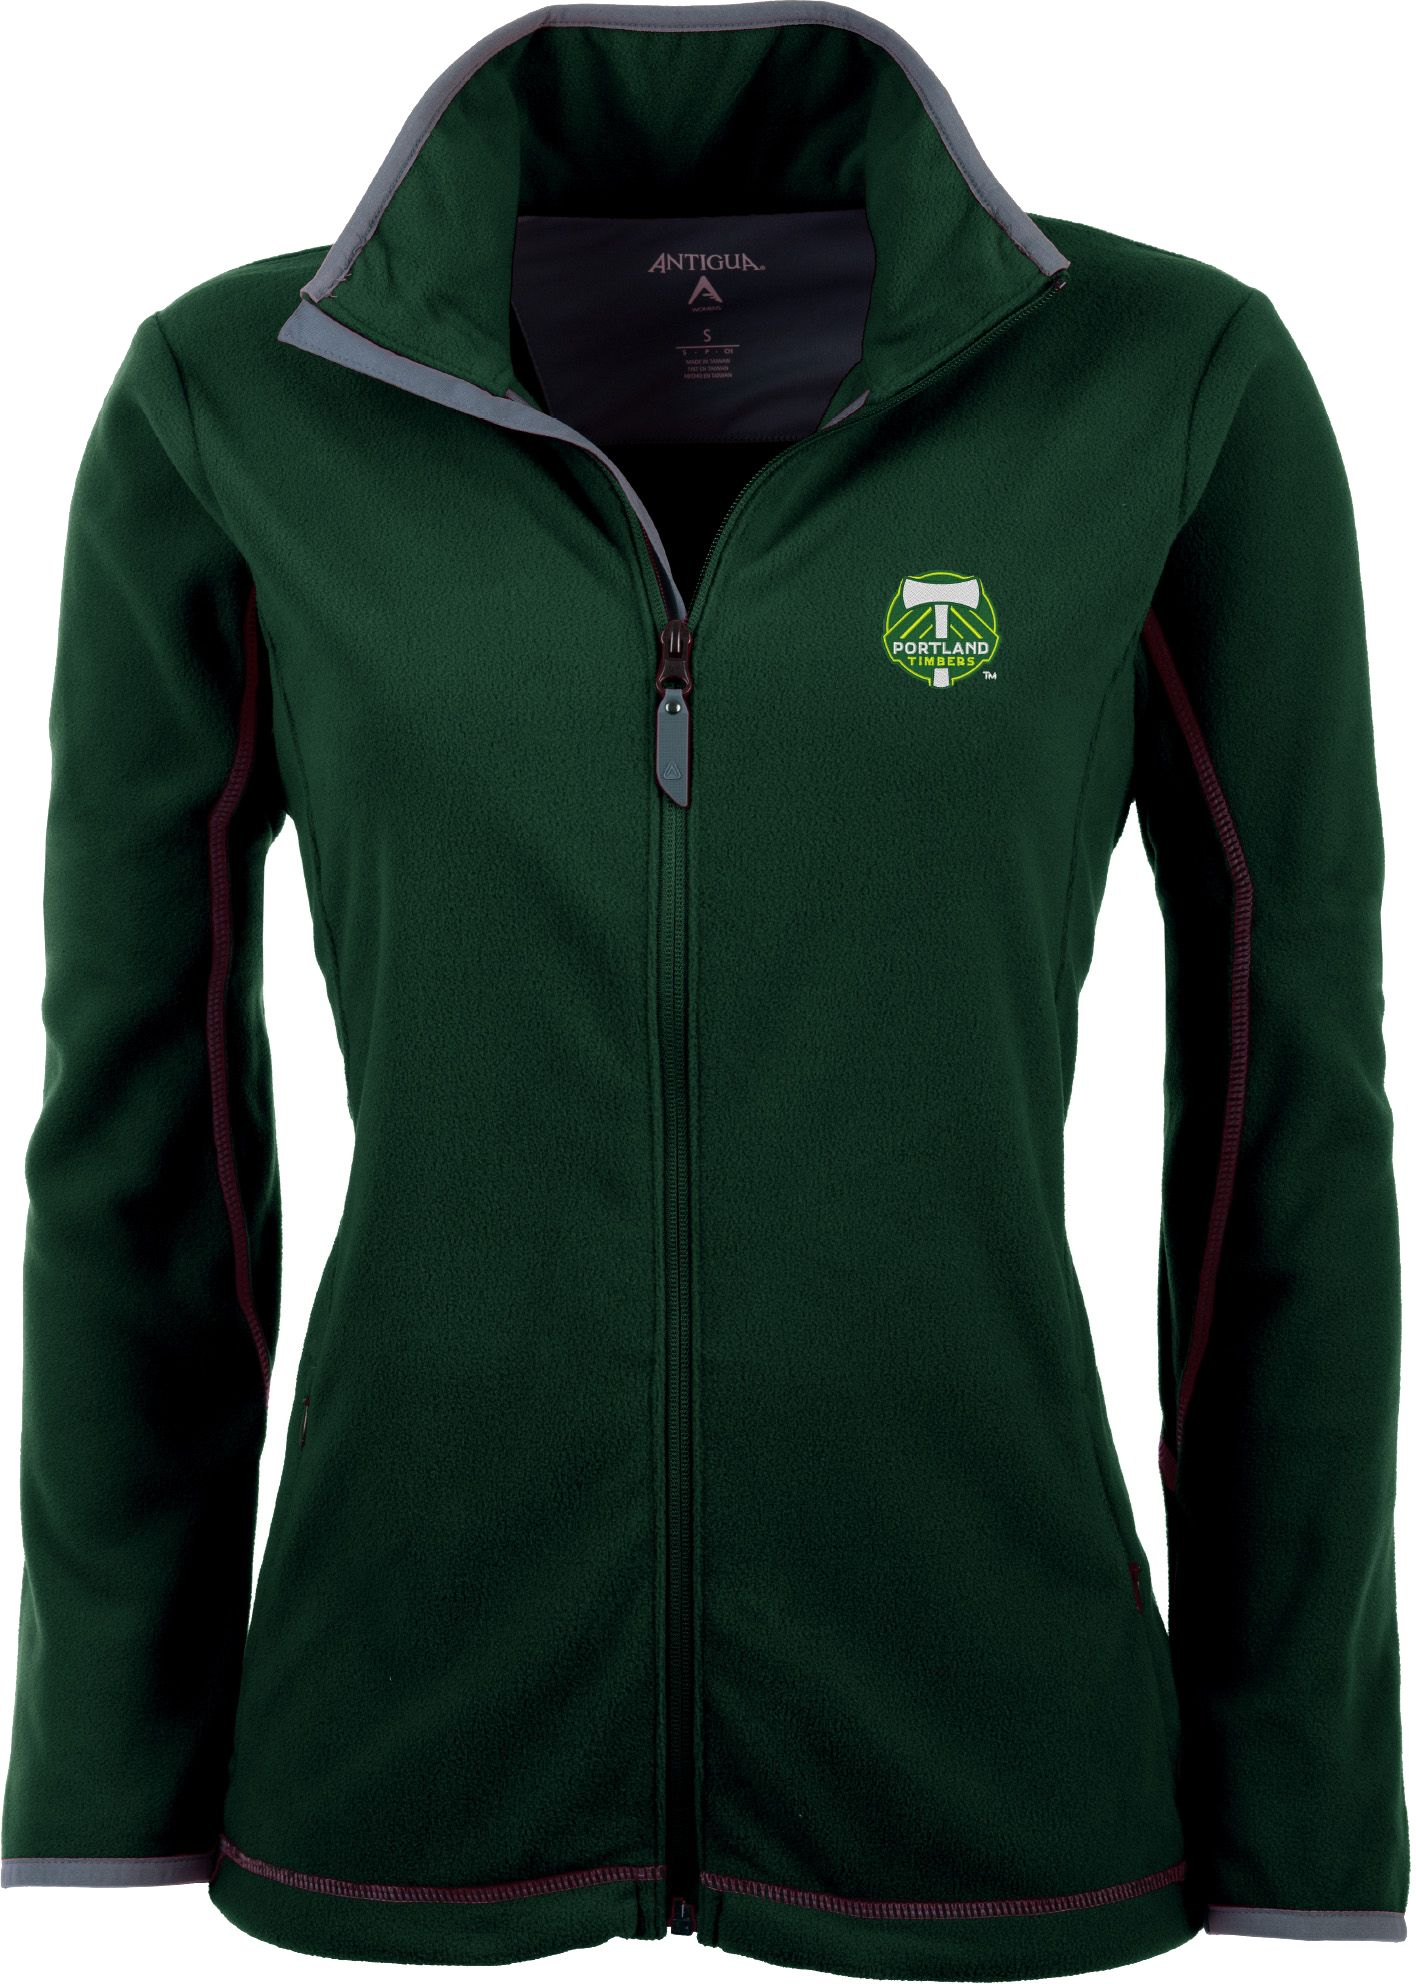 Antigua Women's Portland Timbers Hunter Green Ice Full-Zip Fleece Jacket, Size: Small, Team thumbnail